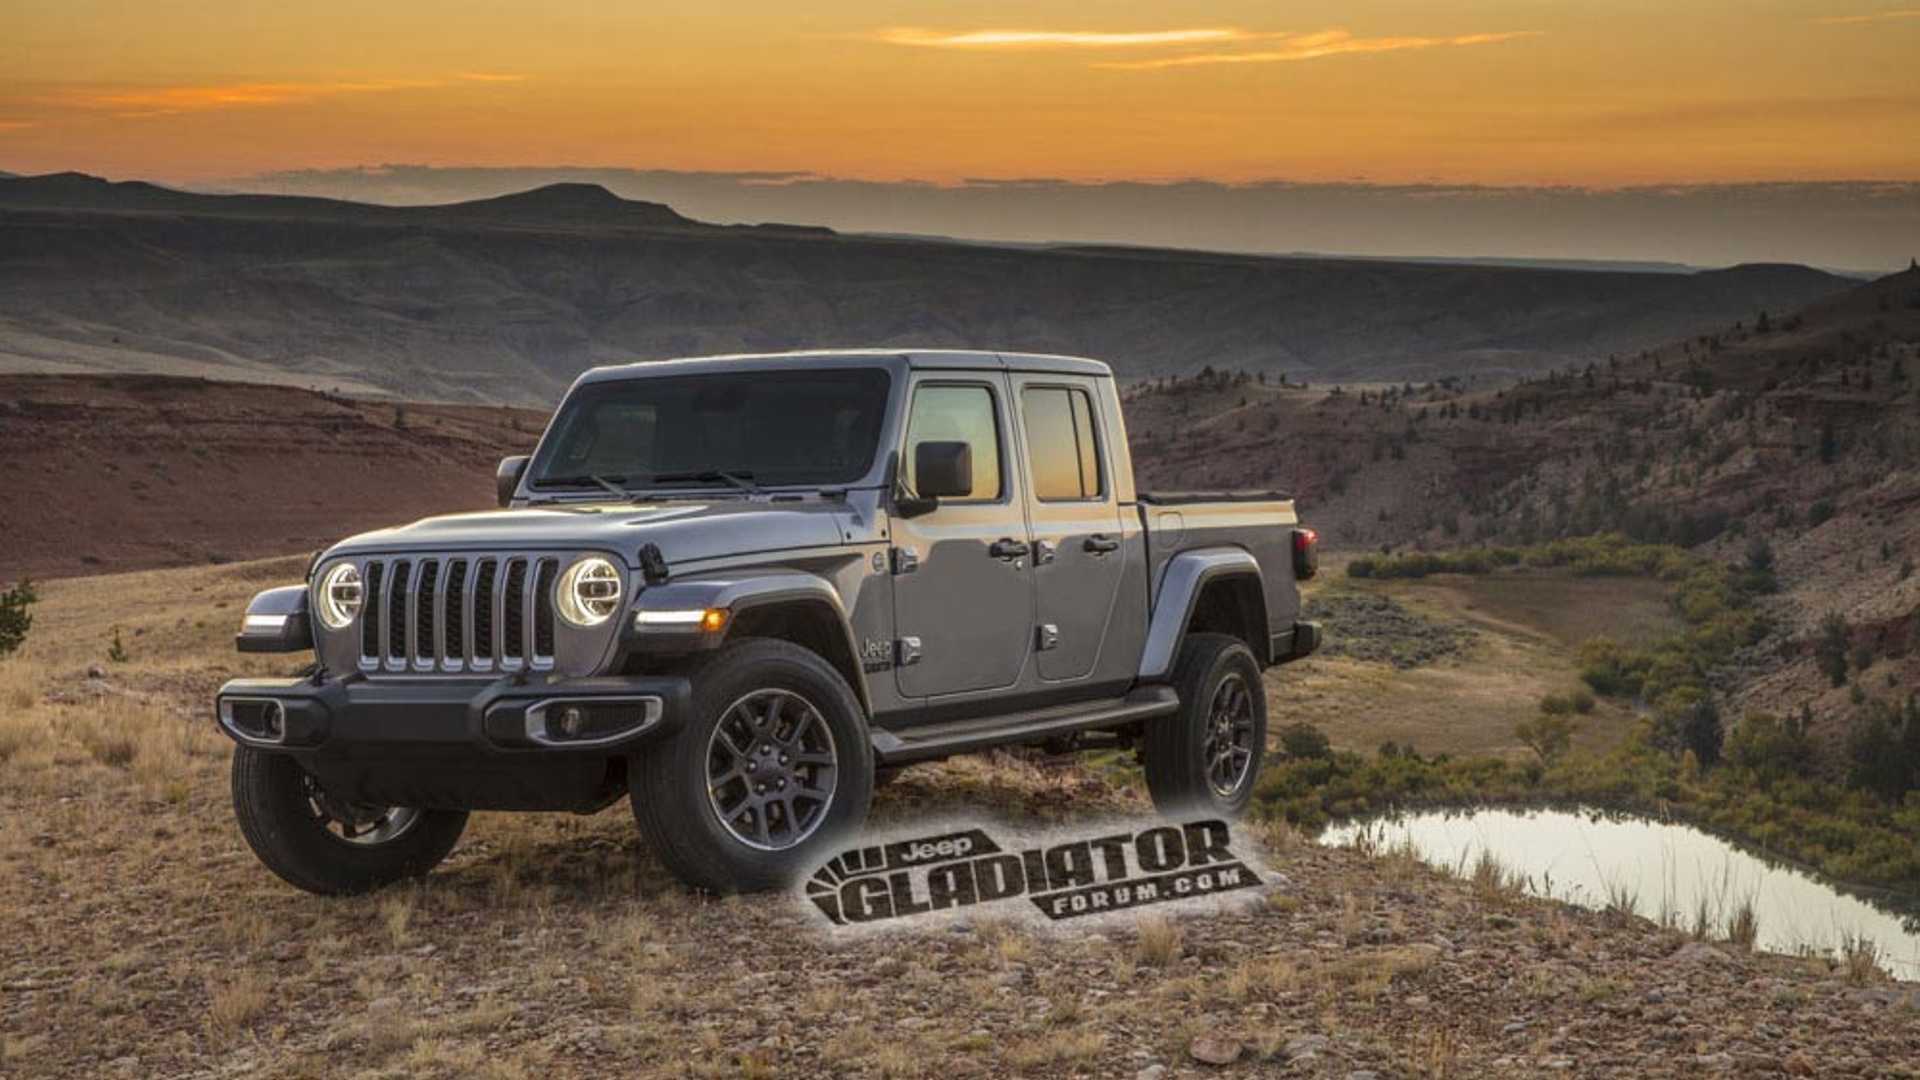 95 Best 2020 Jeep Gladiator Hercules Exterior And Interior